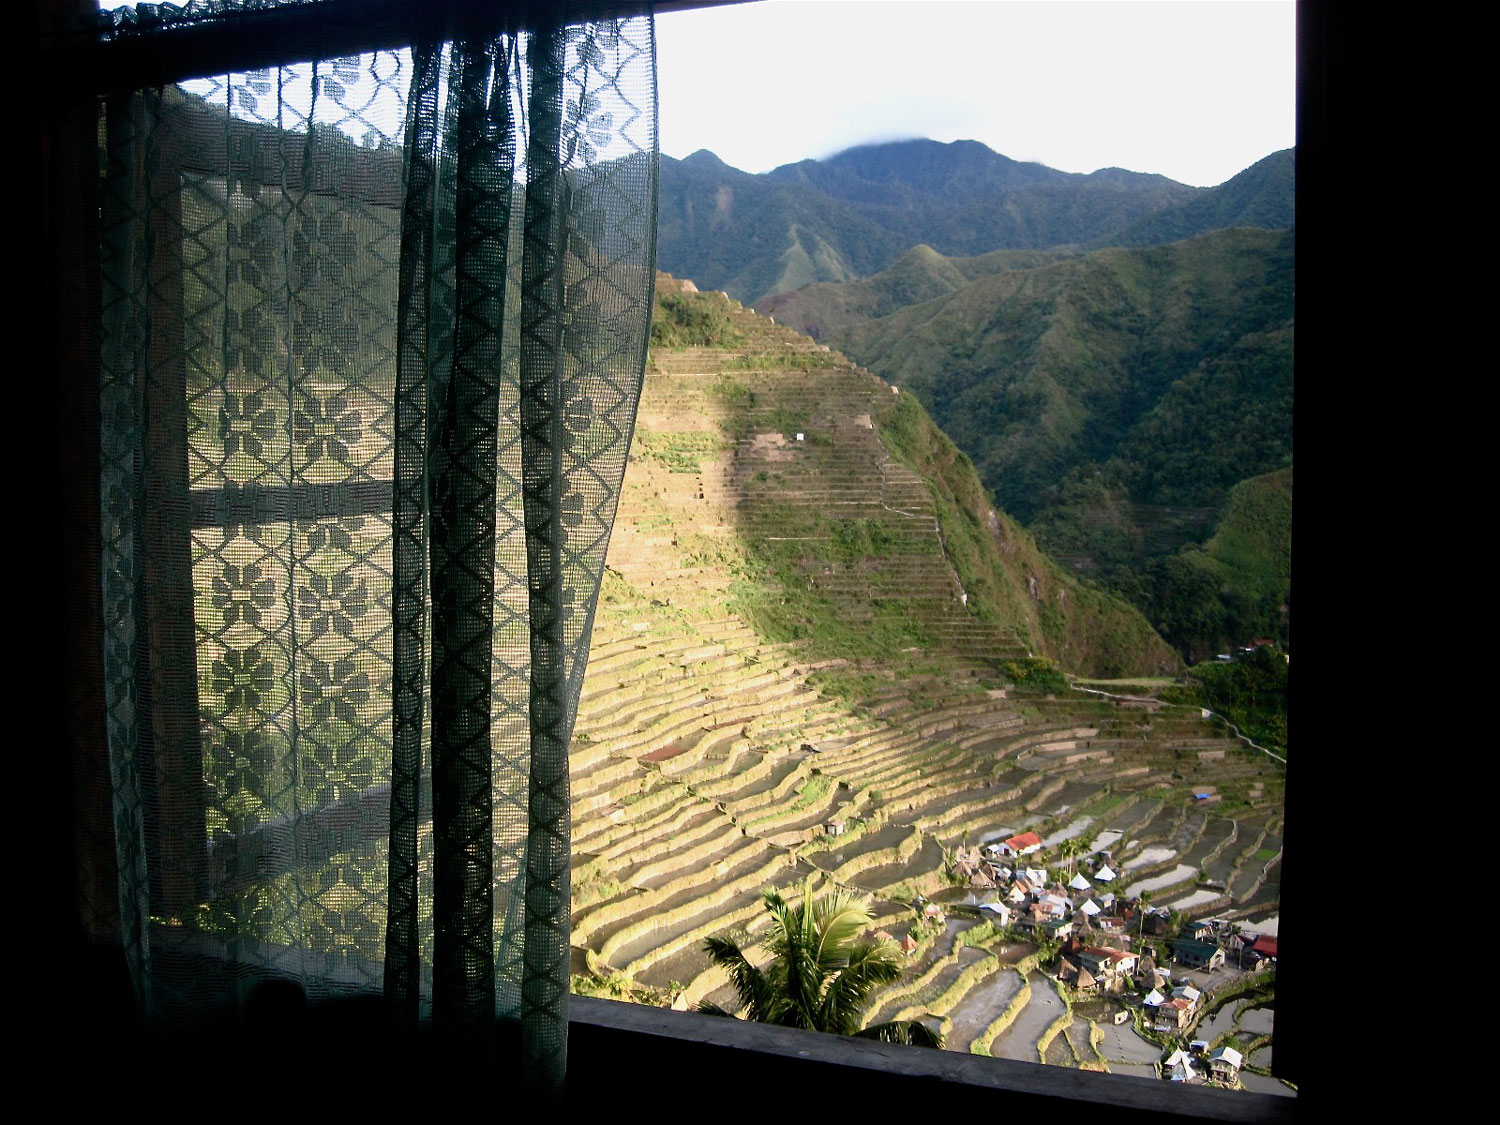 A scenic view of Ifugao.